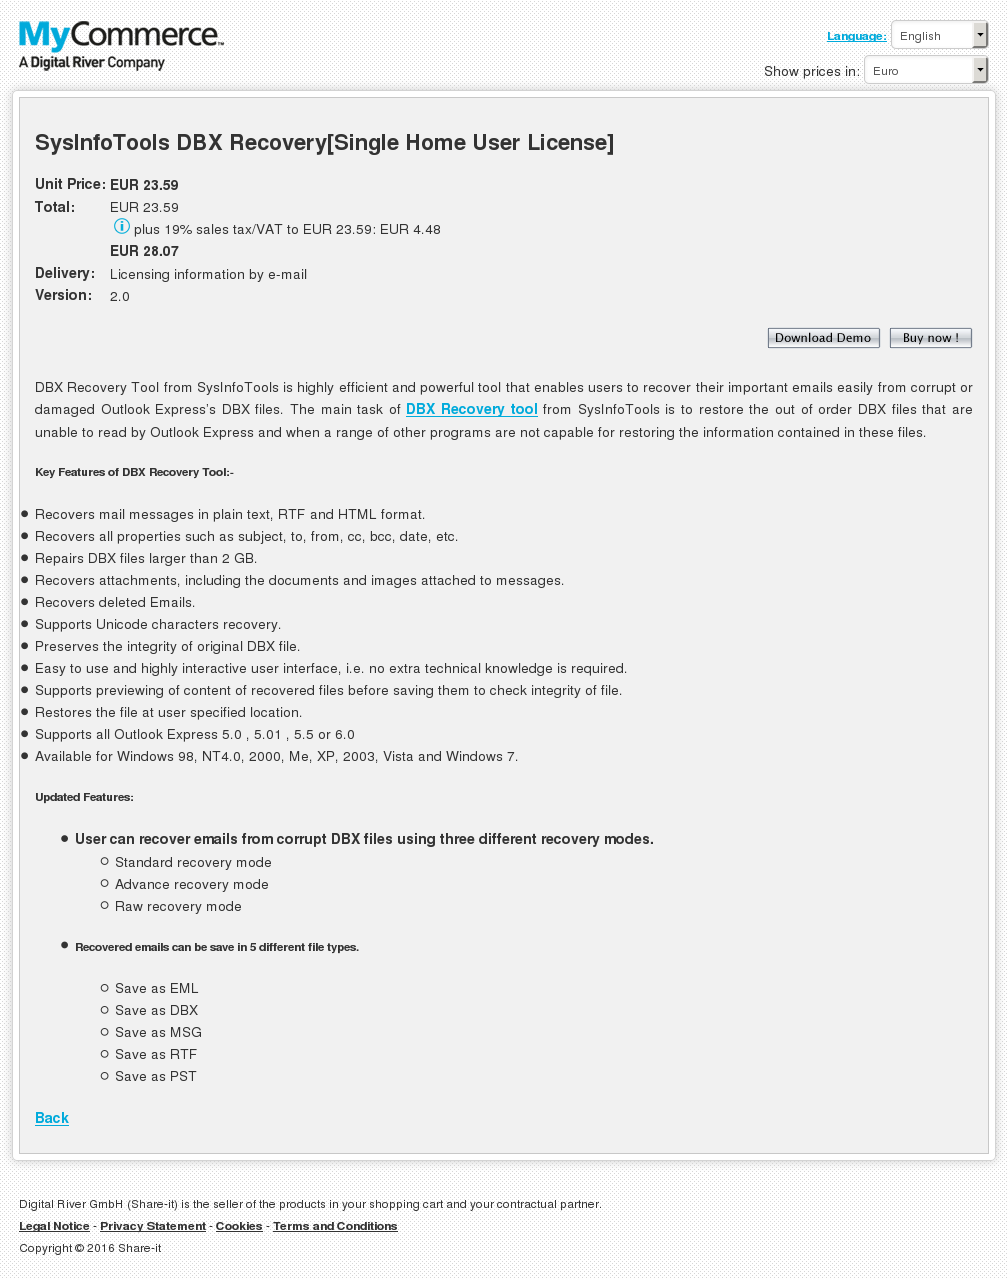 Sysinfotools Dbx Recovery Single Home User License Review